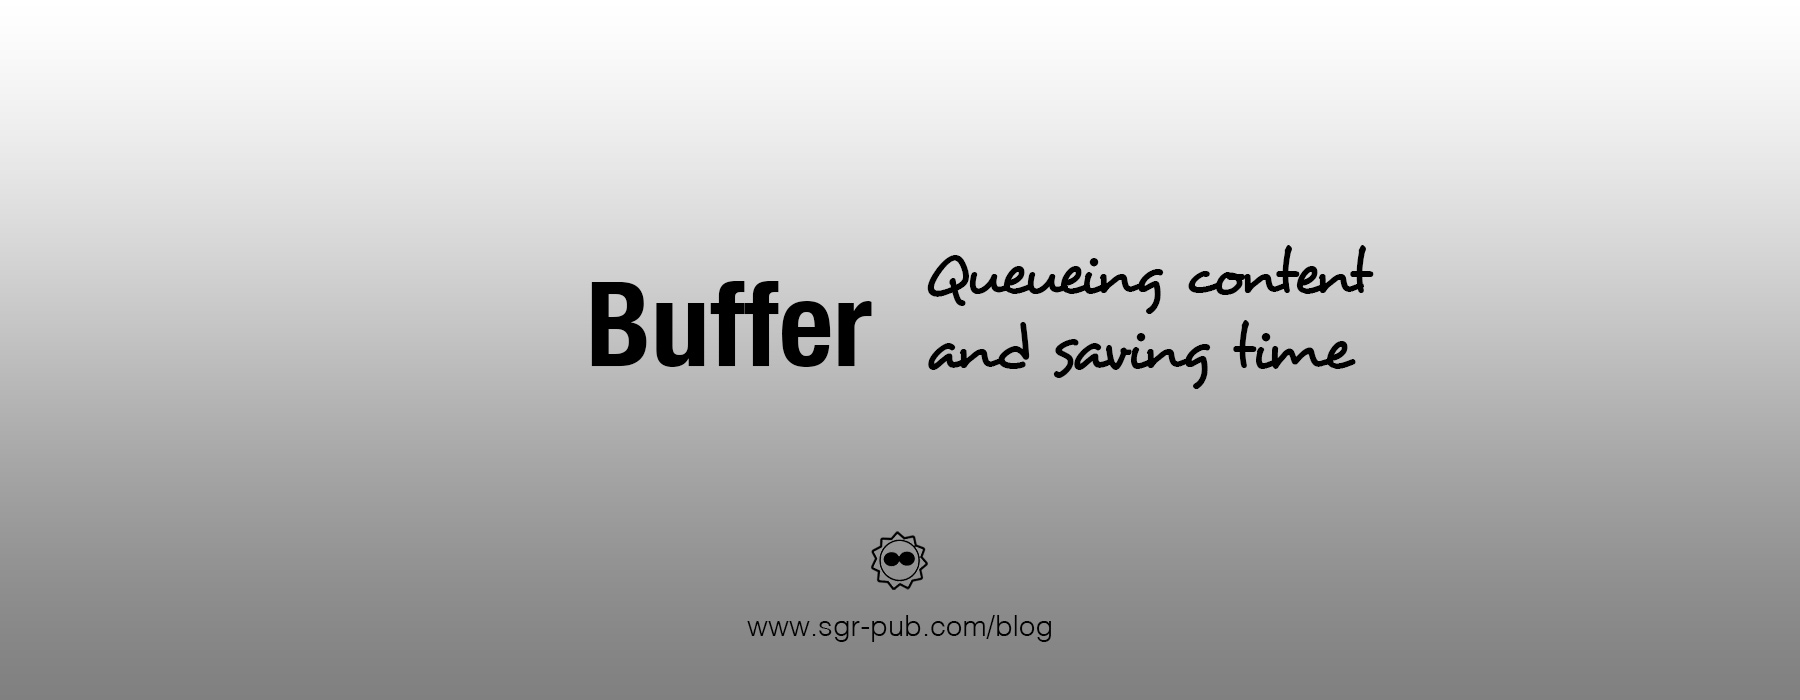 Buffer for Authors - Queueing content and saving time